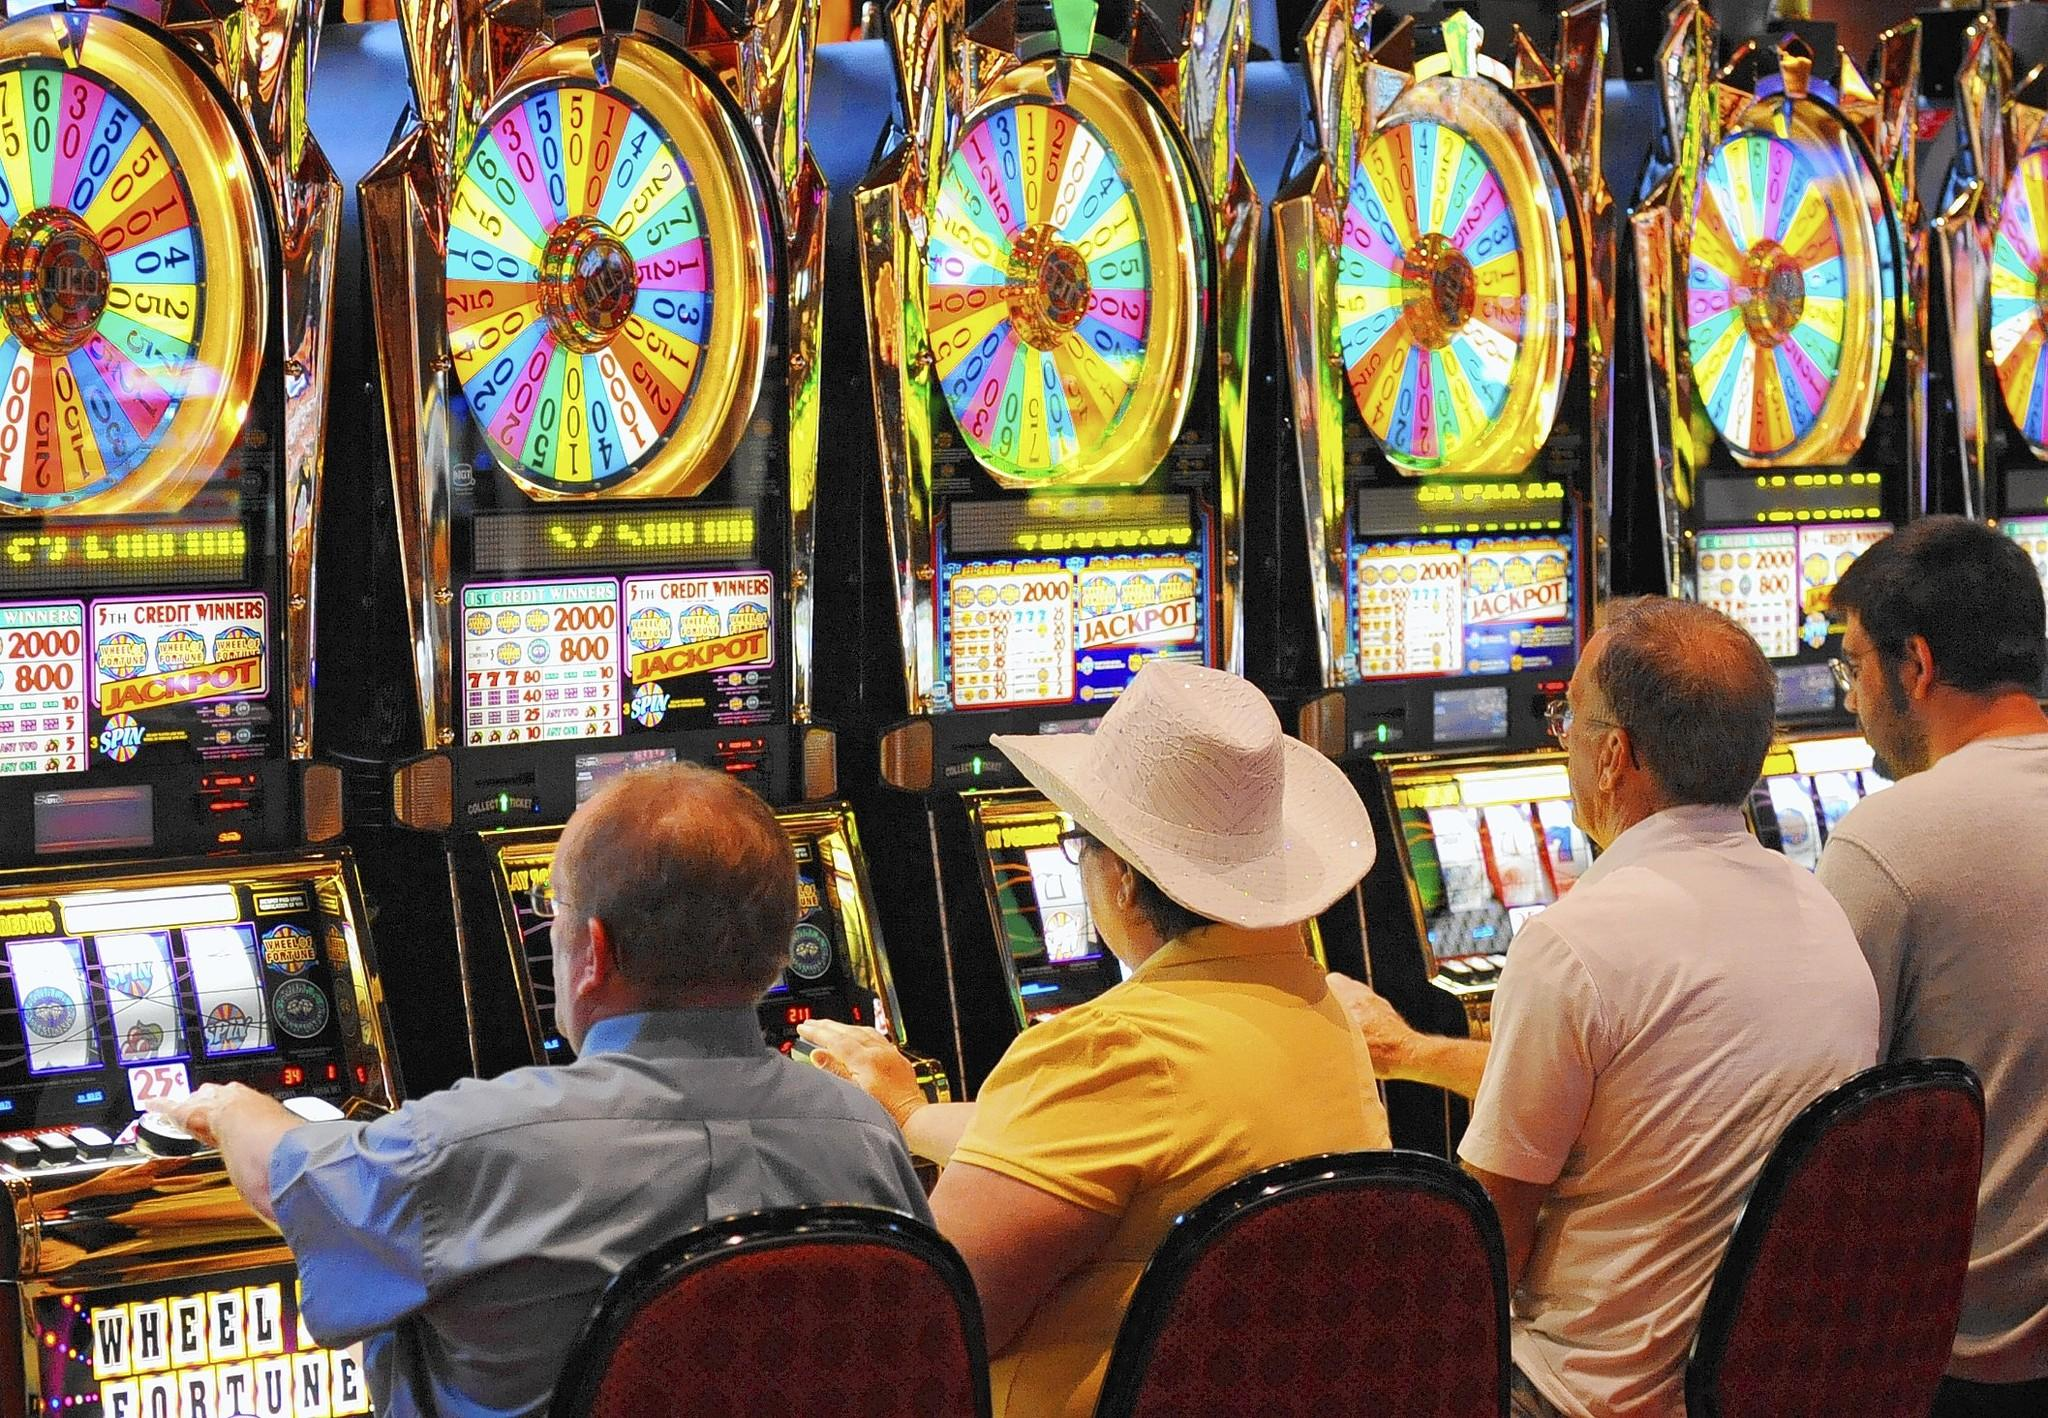 The Pittsburgh Tribune-Review found that casino revenue hasn't provided as much school property tax relief as promised when gambling legislation was adopted in Pennsylvania.